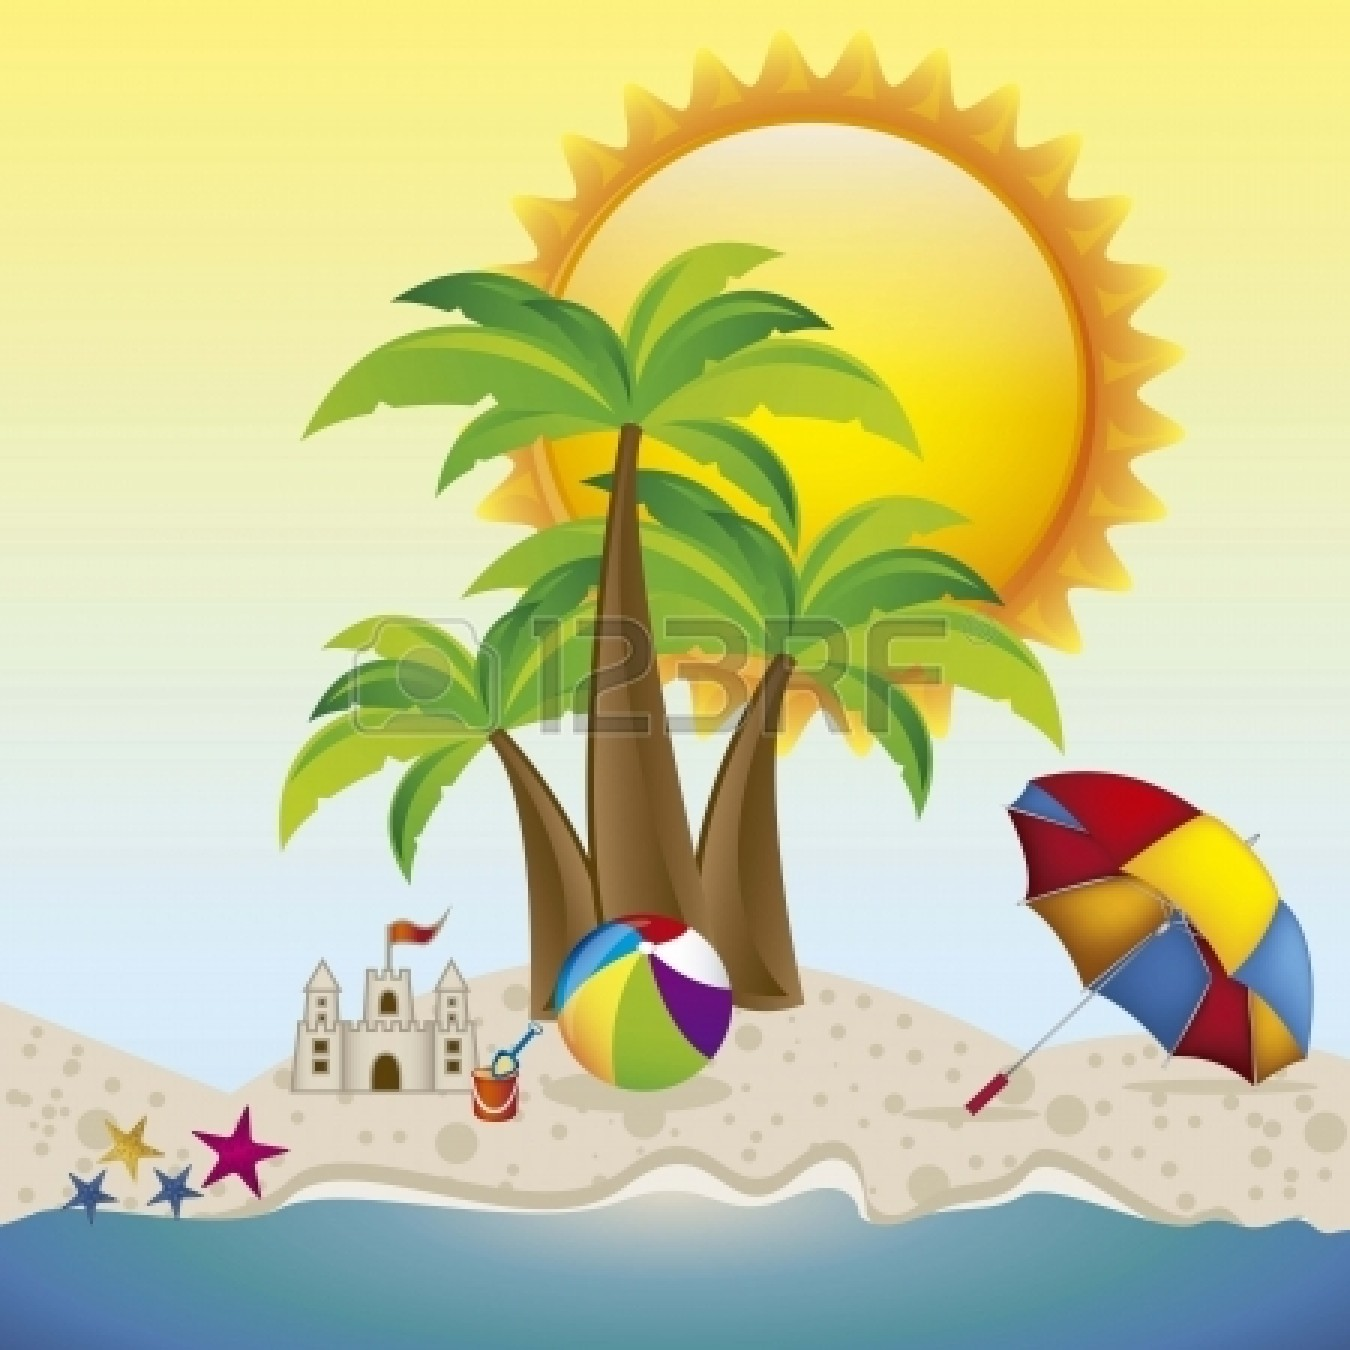 hight resolution of summer vacation images